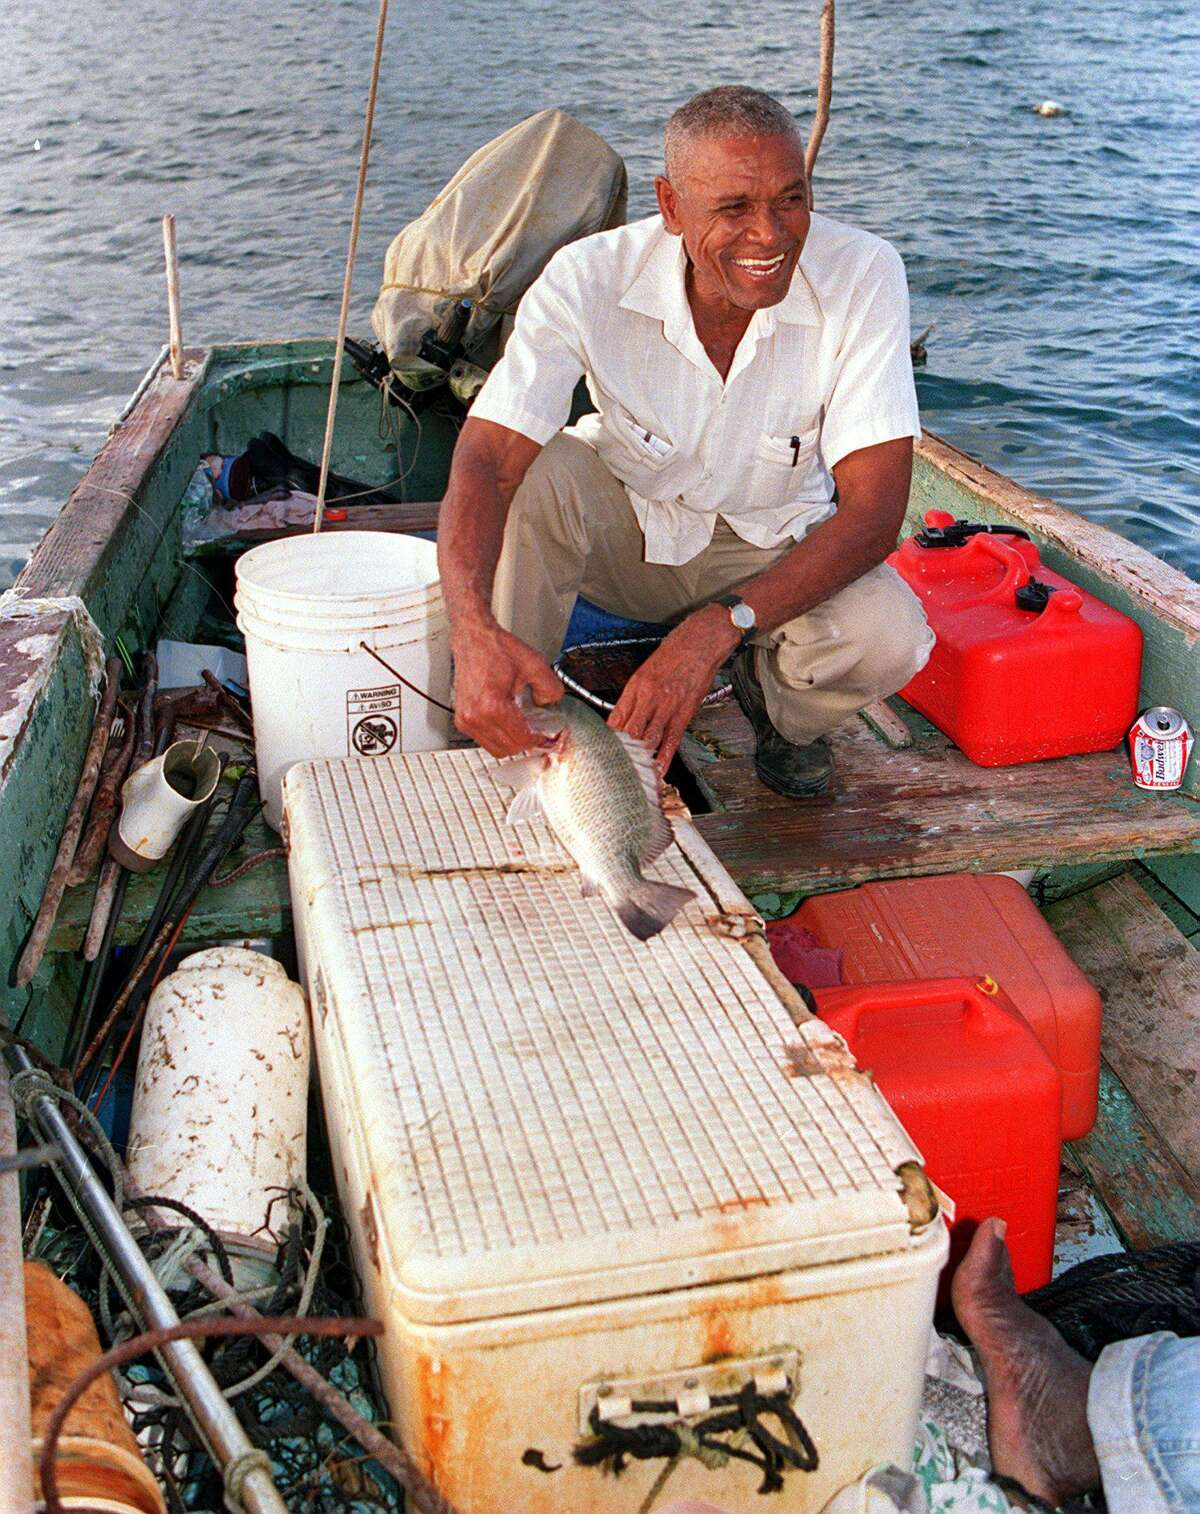 """Tim Duncan's father, William, fishes at the Christiansted Wharf in St. Croix. """"I'm the product of so many,"""" Duncan said Friday. """"My islands, my mother and my father, my sisters and friends. Everyone has had a hand along the way in getting me here."""""""